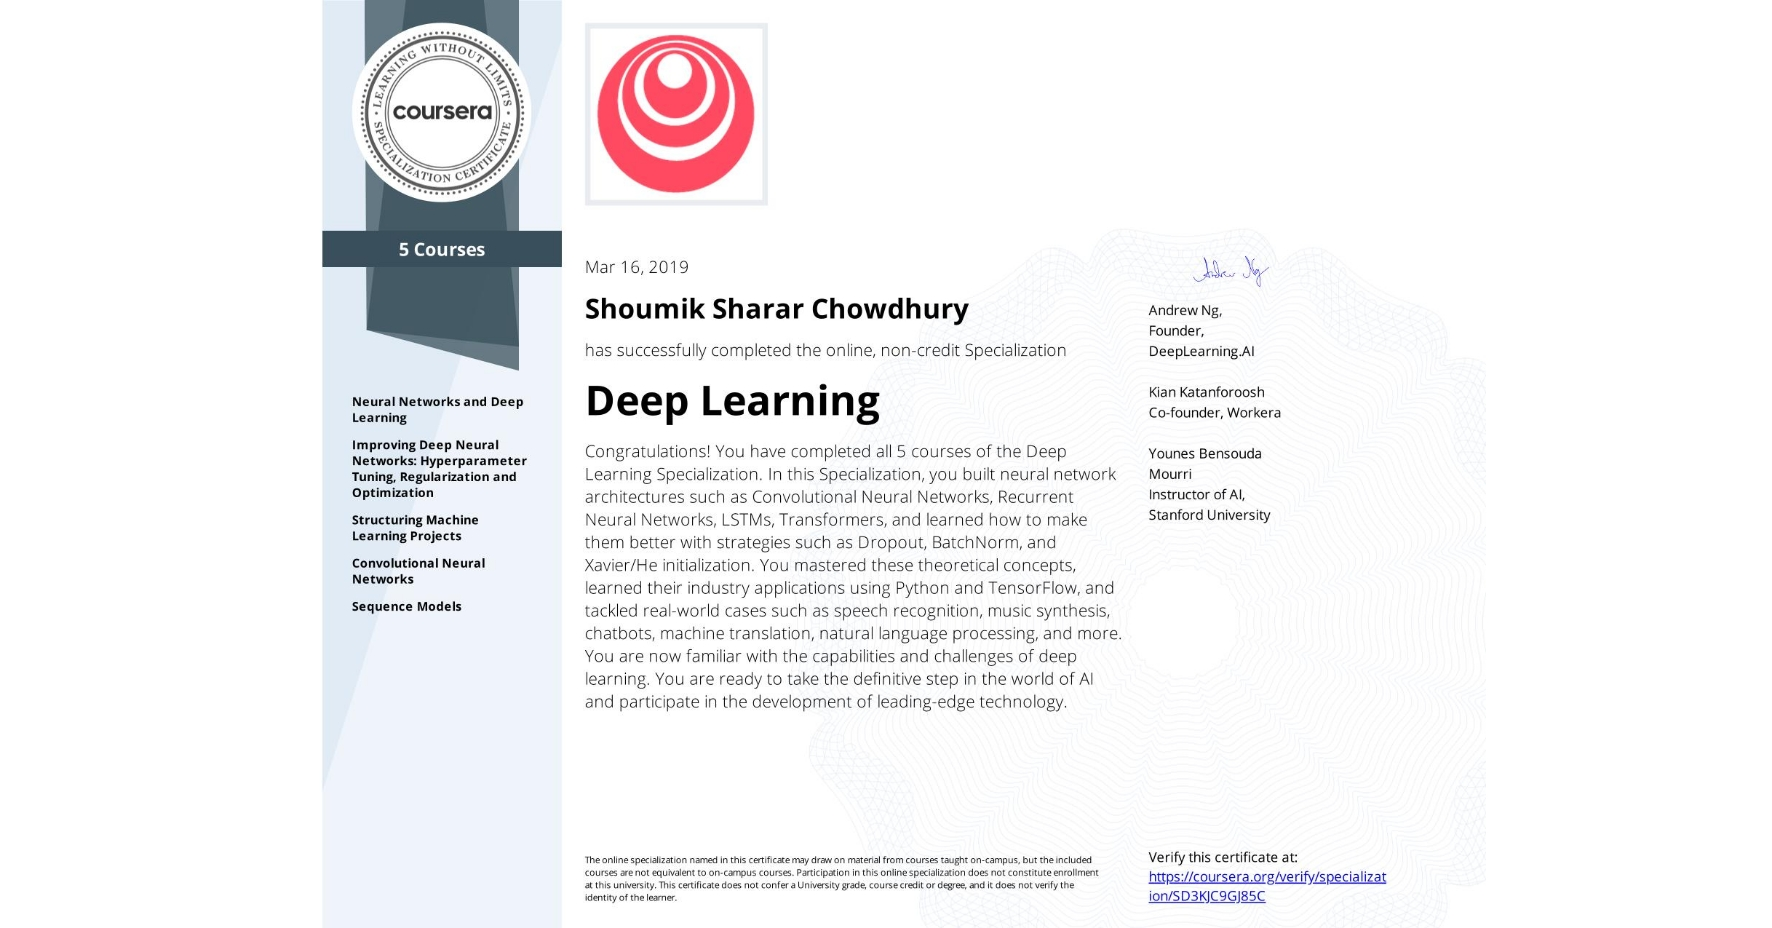 View certificate for Shoumik Sharar Chowdhury, Deep Learning, offered through Coursera. Congratulations! You have completed all five courses of the Deep Learning Specialization.  In this Specialization, you built neural network architectures such as Convolutional Neural Networks, Recurrent Neural Networks, LSTMs, Transformers and learned how to make them better with strategies such as Dropout, BatchNorm, Xavier/He initialization, and more. You mastered these theoretical concepts and their application using Python and TensorFlow and also tackled real-world case studies such as autonomous driving, sign language reading, music generation, computer vision, speech recognition, and natural language processing.   You're now familiar with the capabilities, challenges, and consequences of deep learning and are ready to participate in the development of leading-edge AI technology.